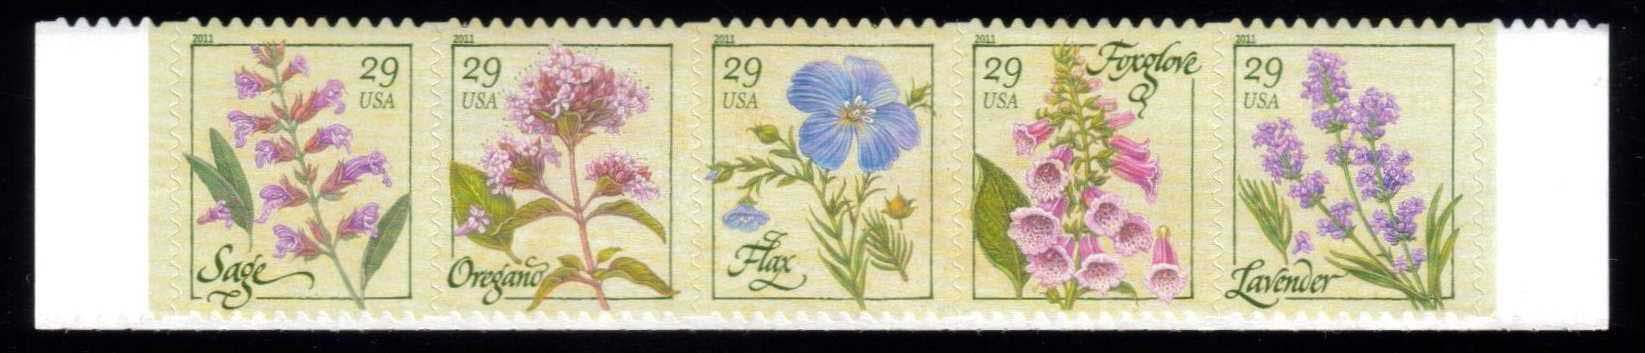 Scott #4505-4509, 29 Cents row of 5 stamps, Herbs